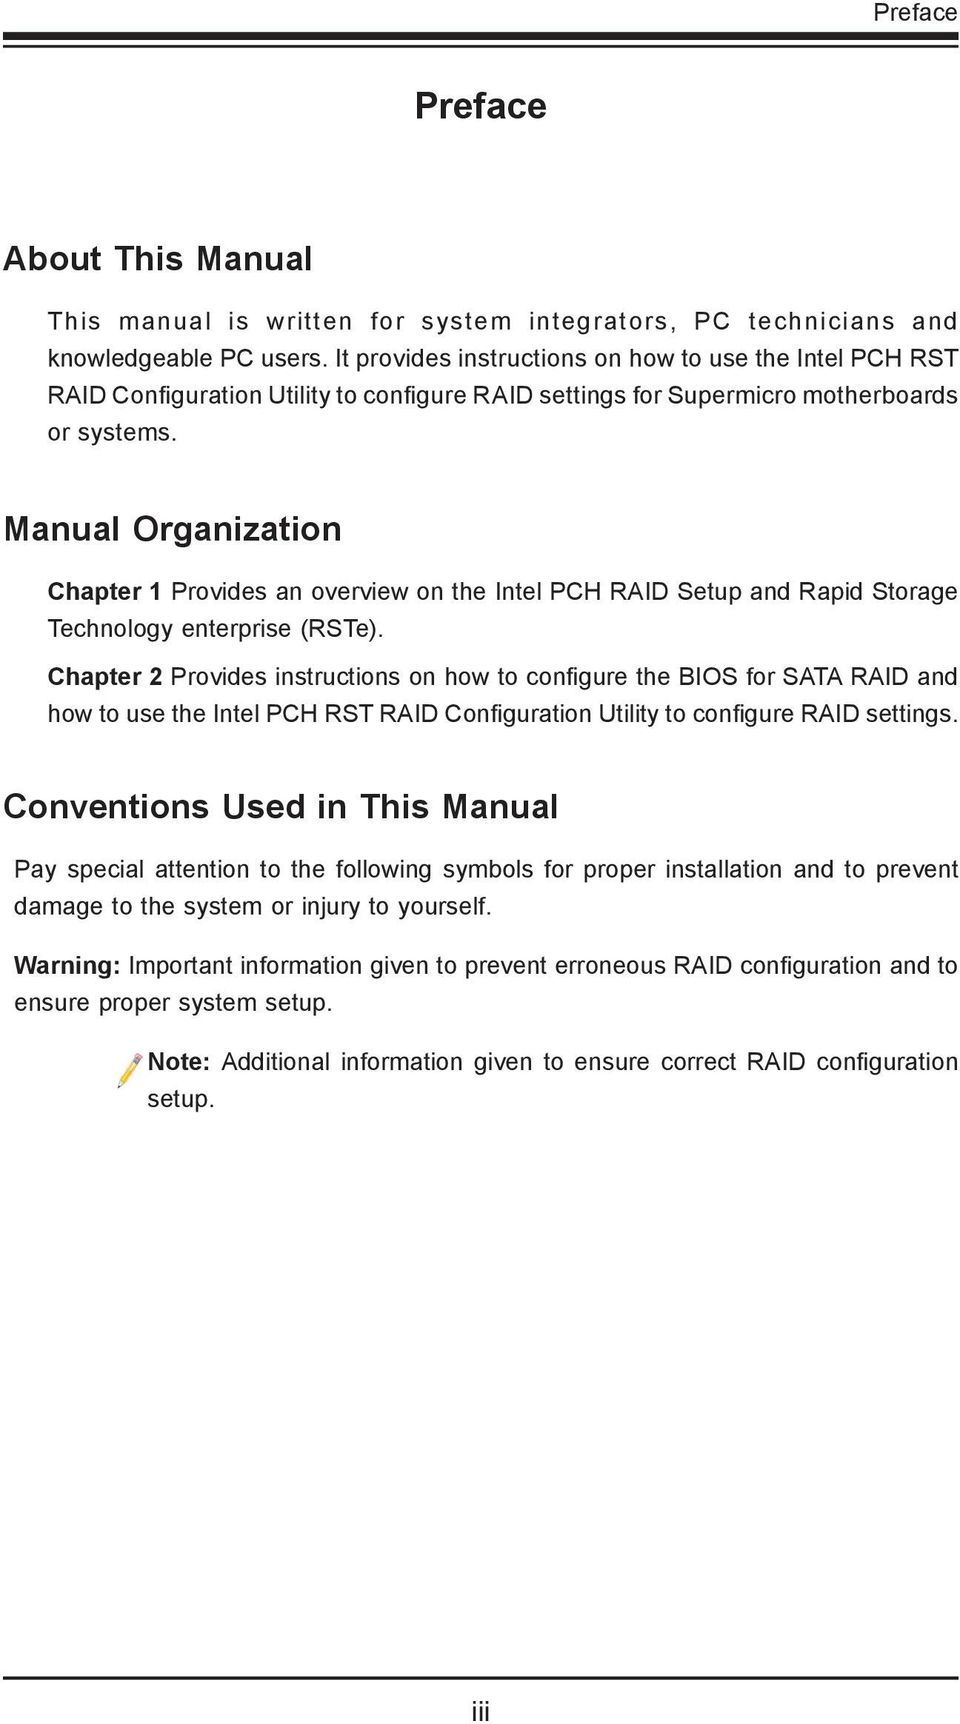 Manual Organization Chapter 1 Provides an overview on the Intel PCH RAID Setup and Rapid Storage Technology enterprise (RSTe).